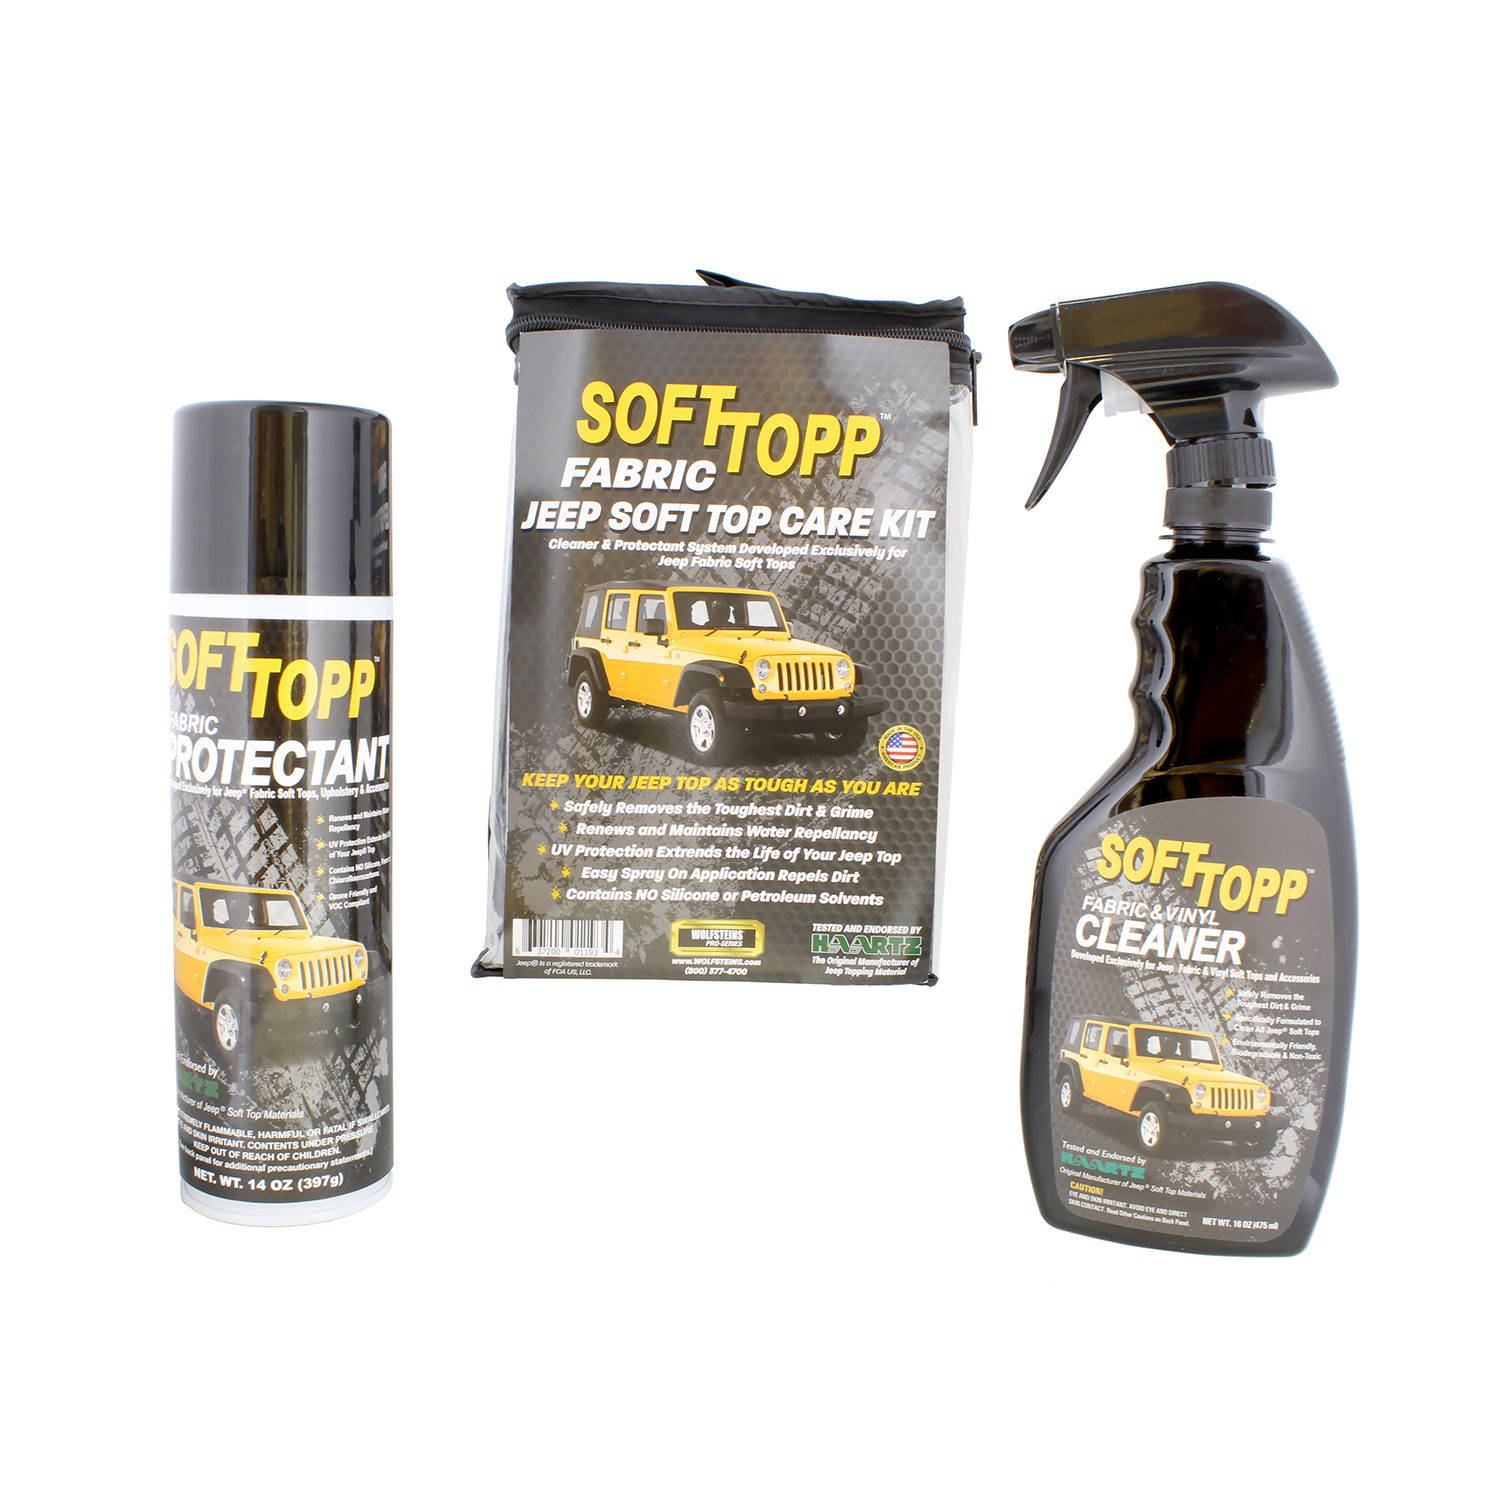 RaggTopp 1193 SoftTop Jeep Fabric Top Cleaner & Protectant Kit - Pack of 2